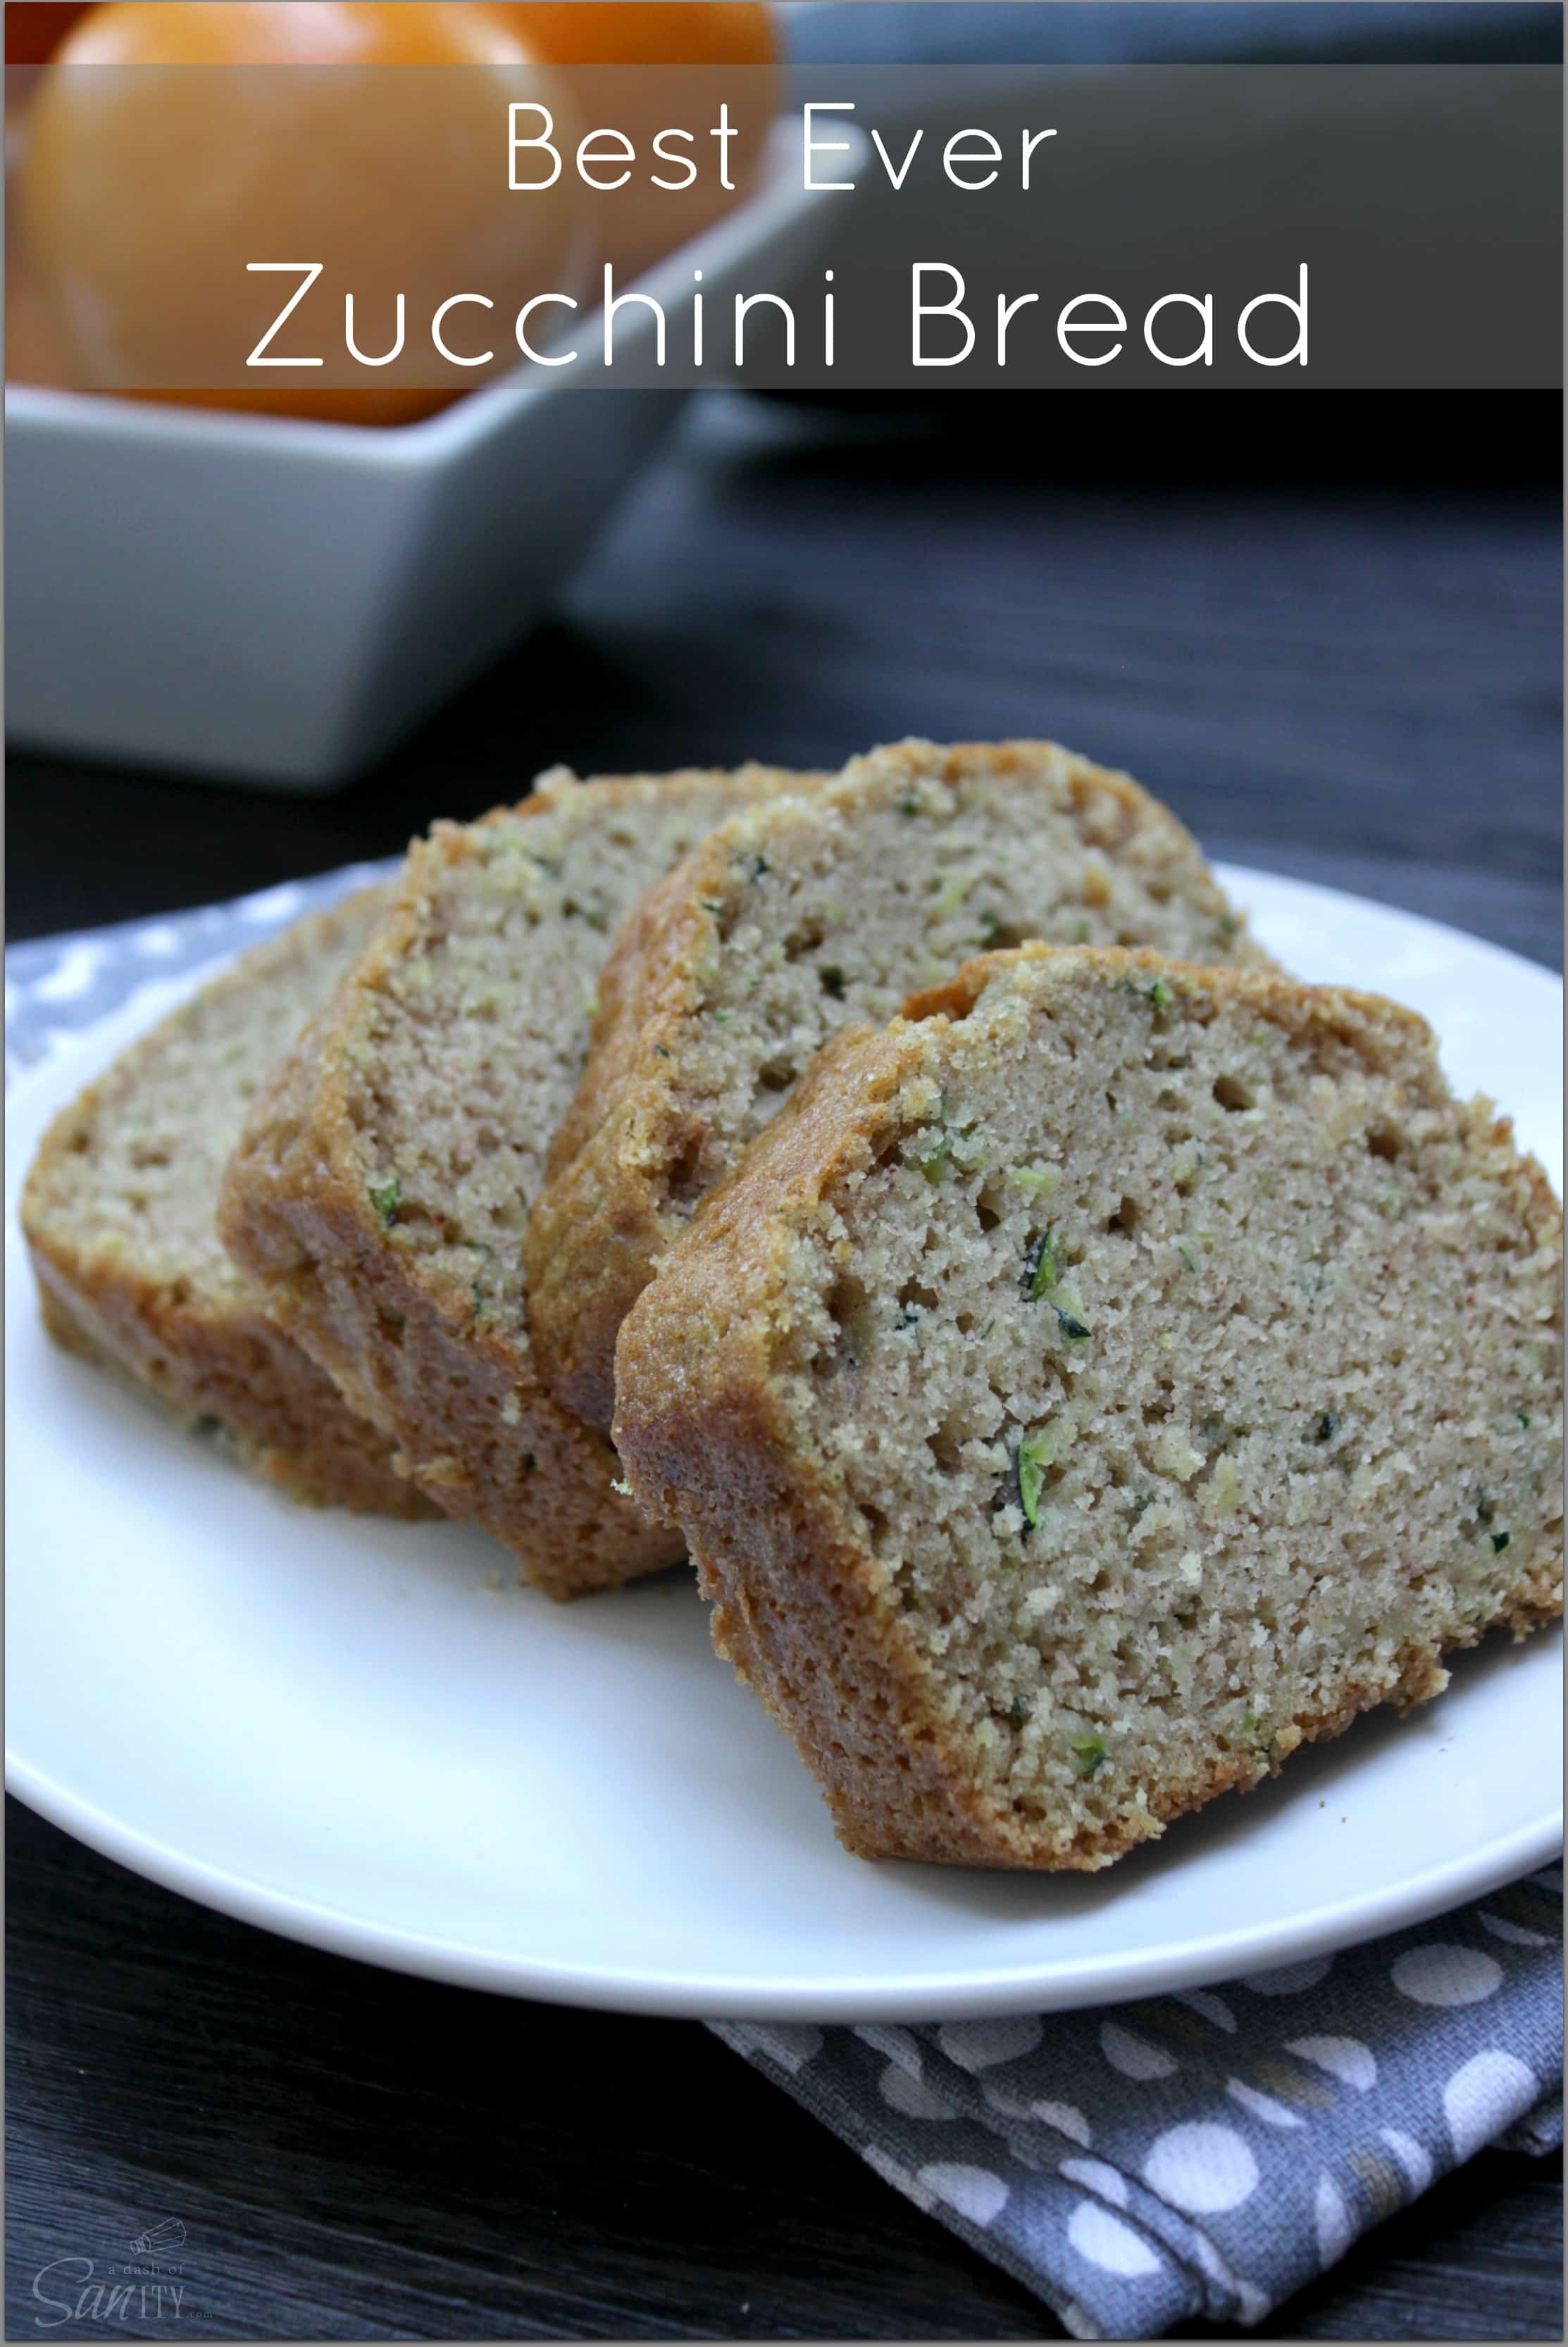 Best Ever Zucchini Bread  Best Ever Zucchini Bread A Dash of Sanity